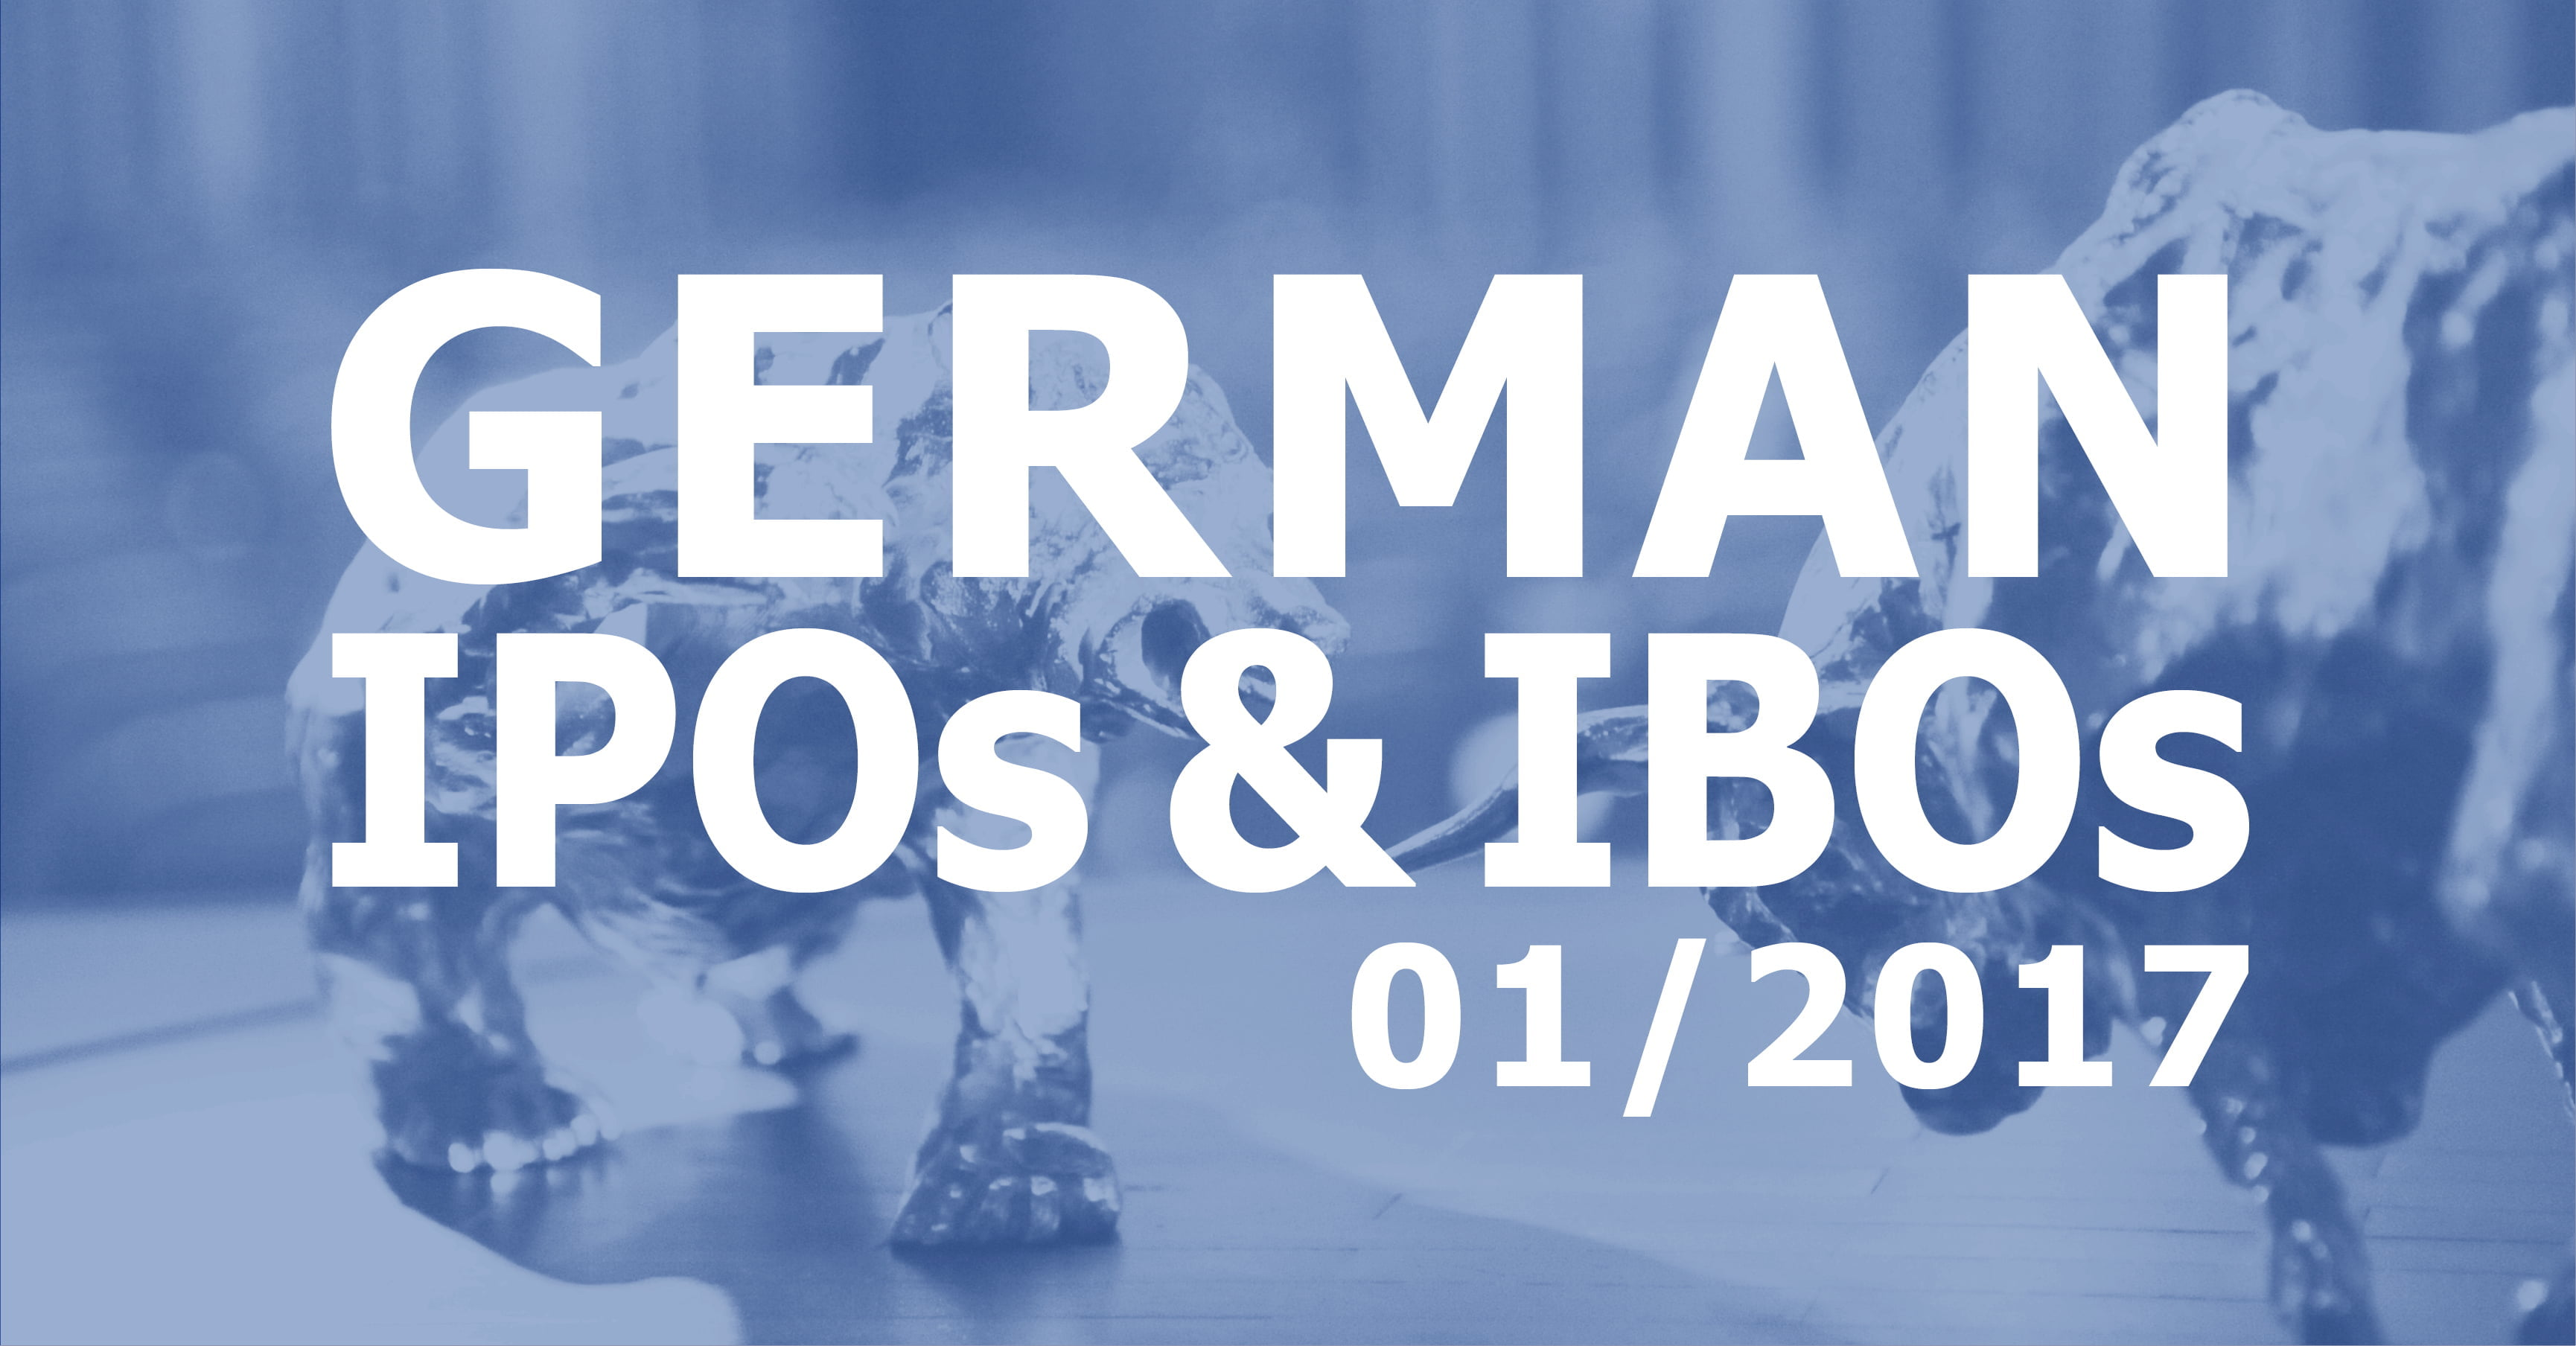 German IPOs and IBOs 01/2017